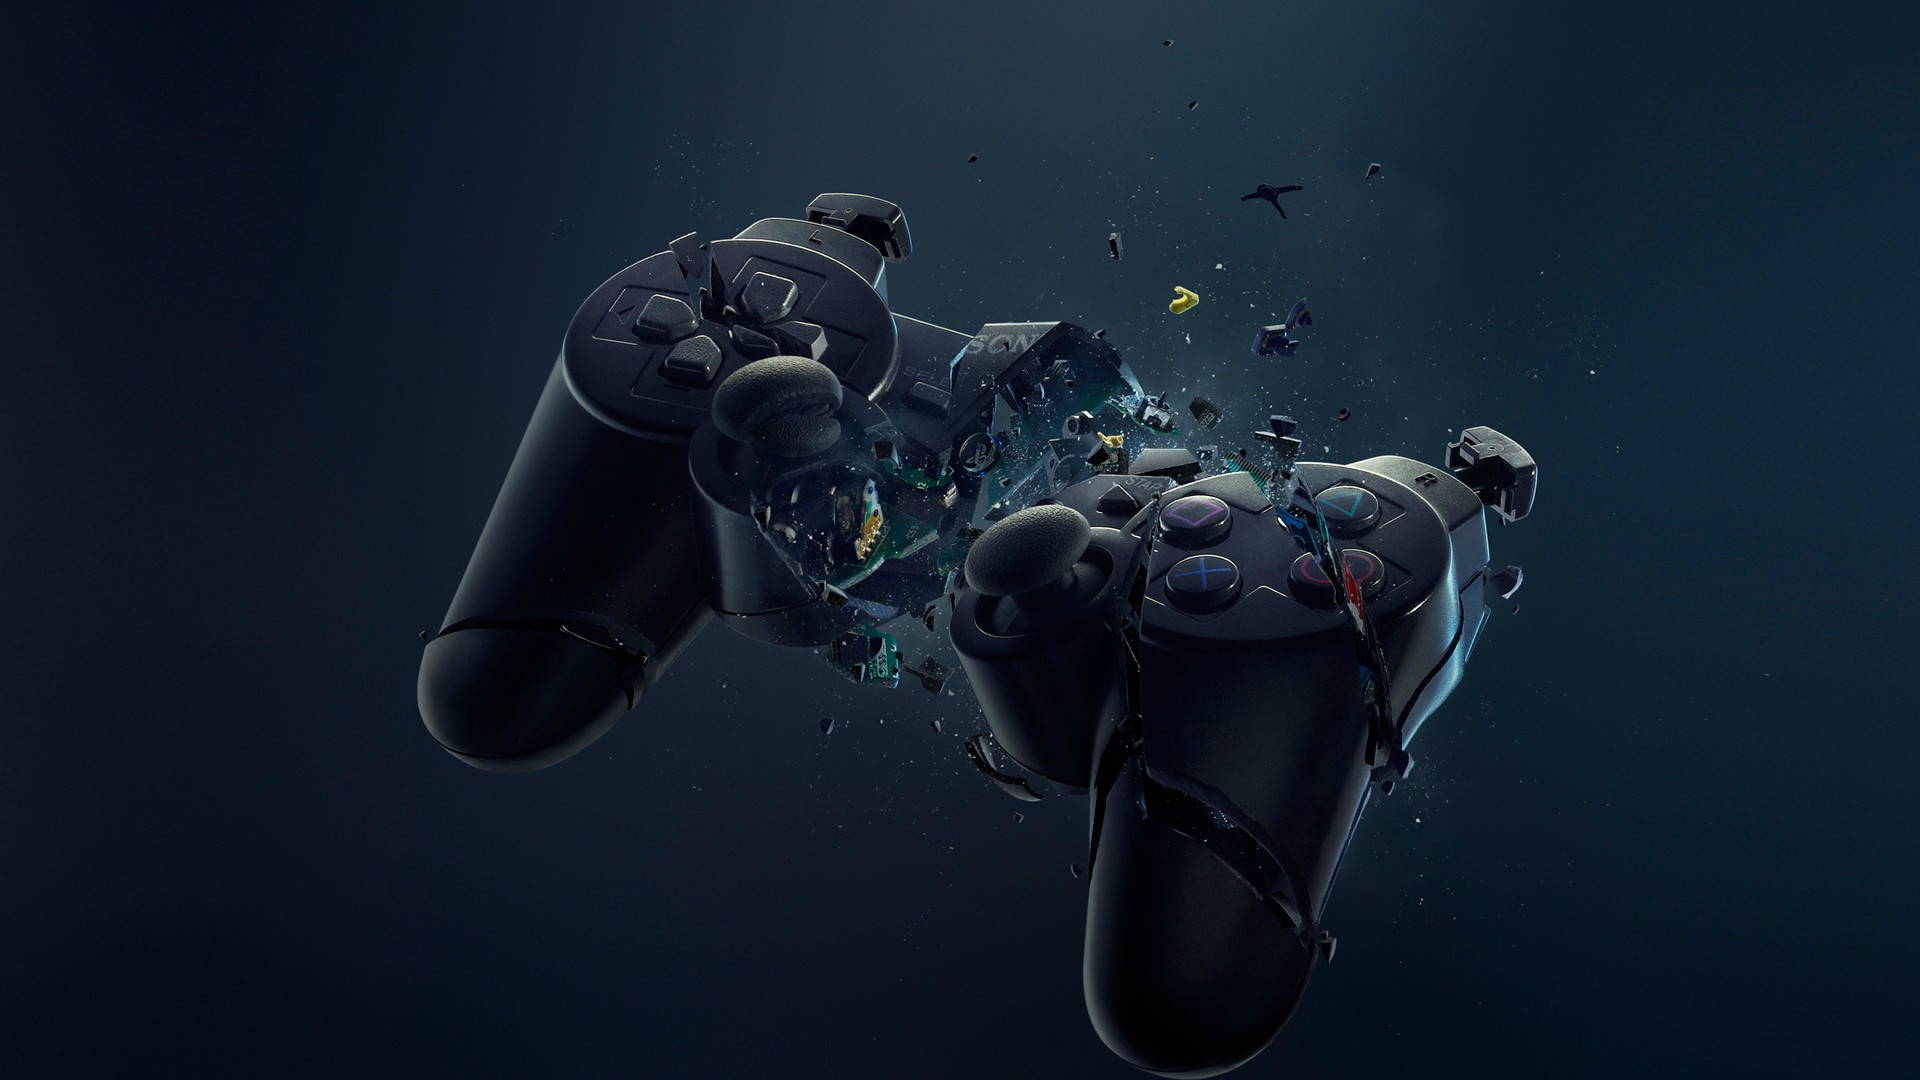 Gaming wallpaper games Playstation